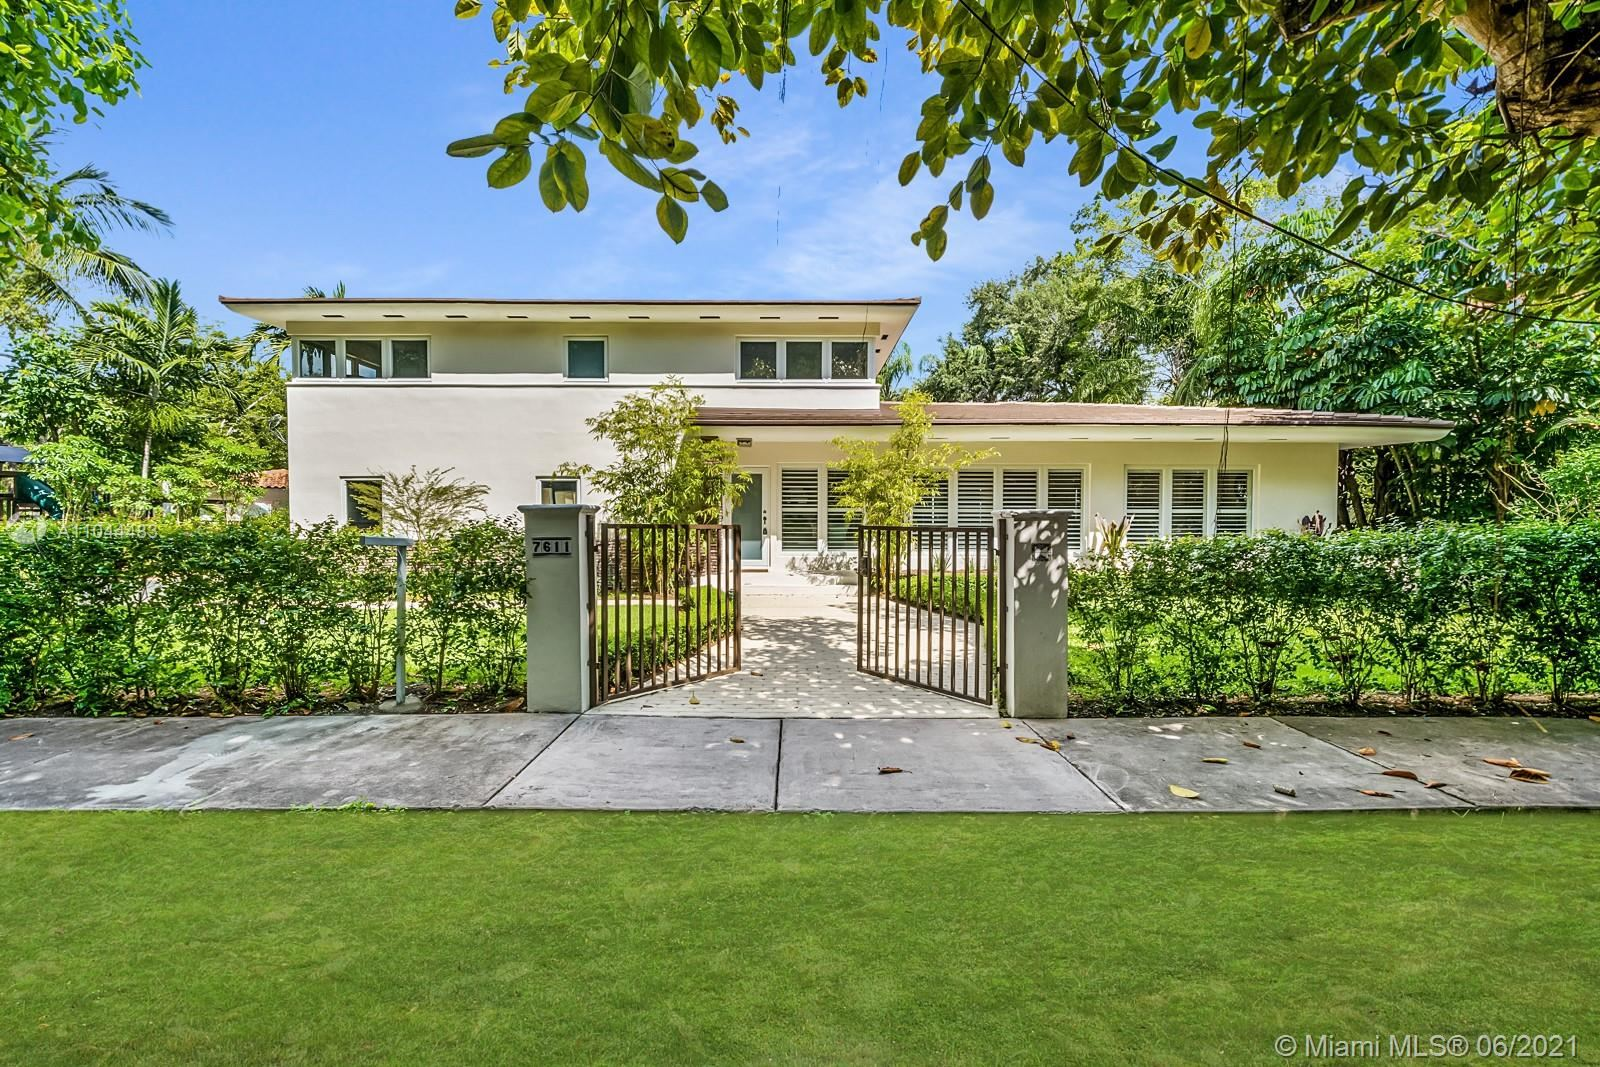 7611 Old Cutler Rd, Coral Gables, FL 33143 - #: A11044483